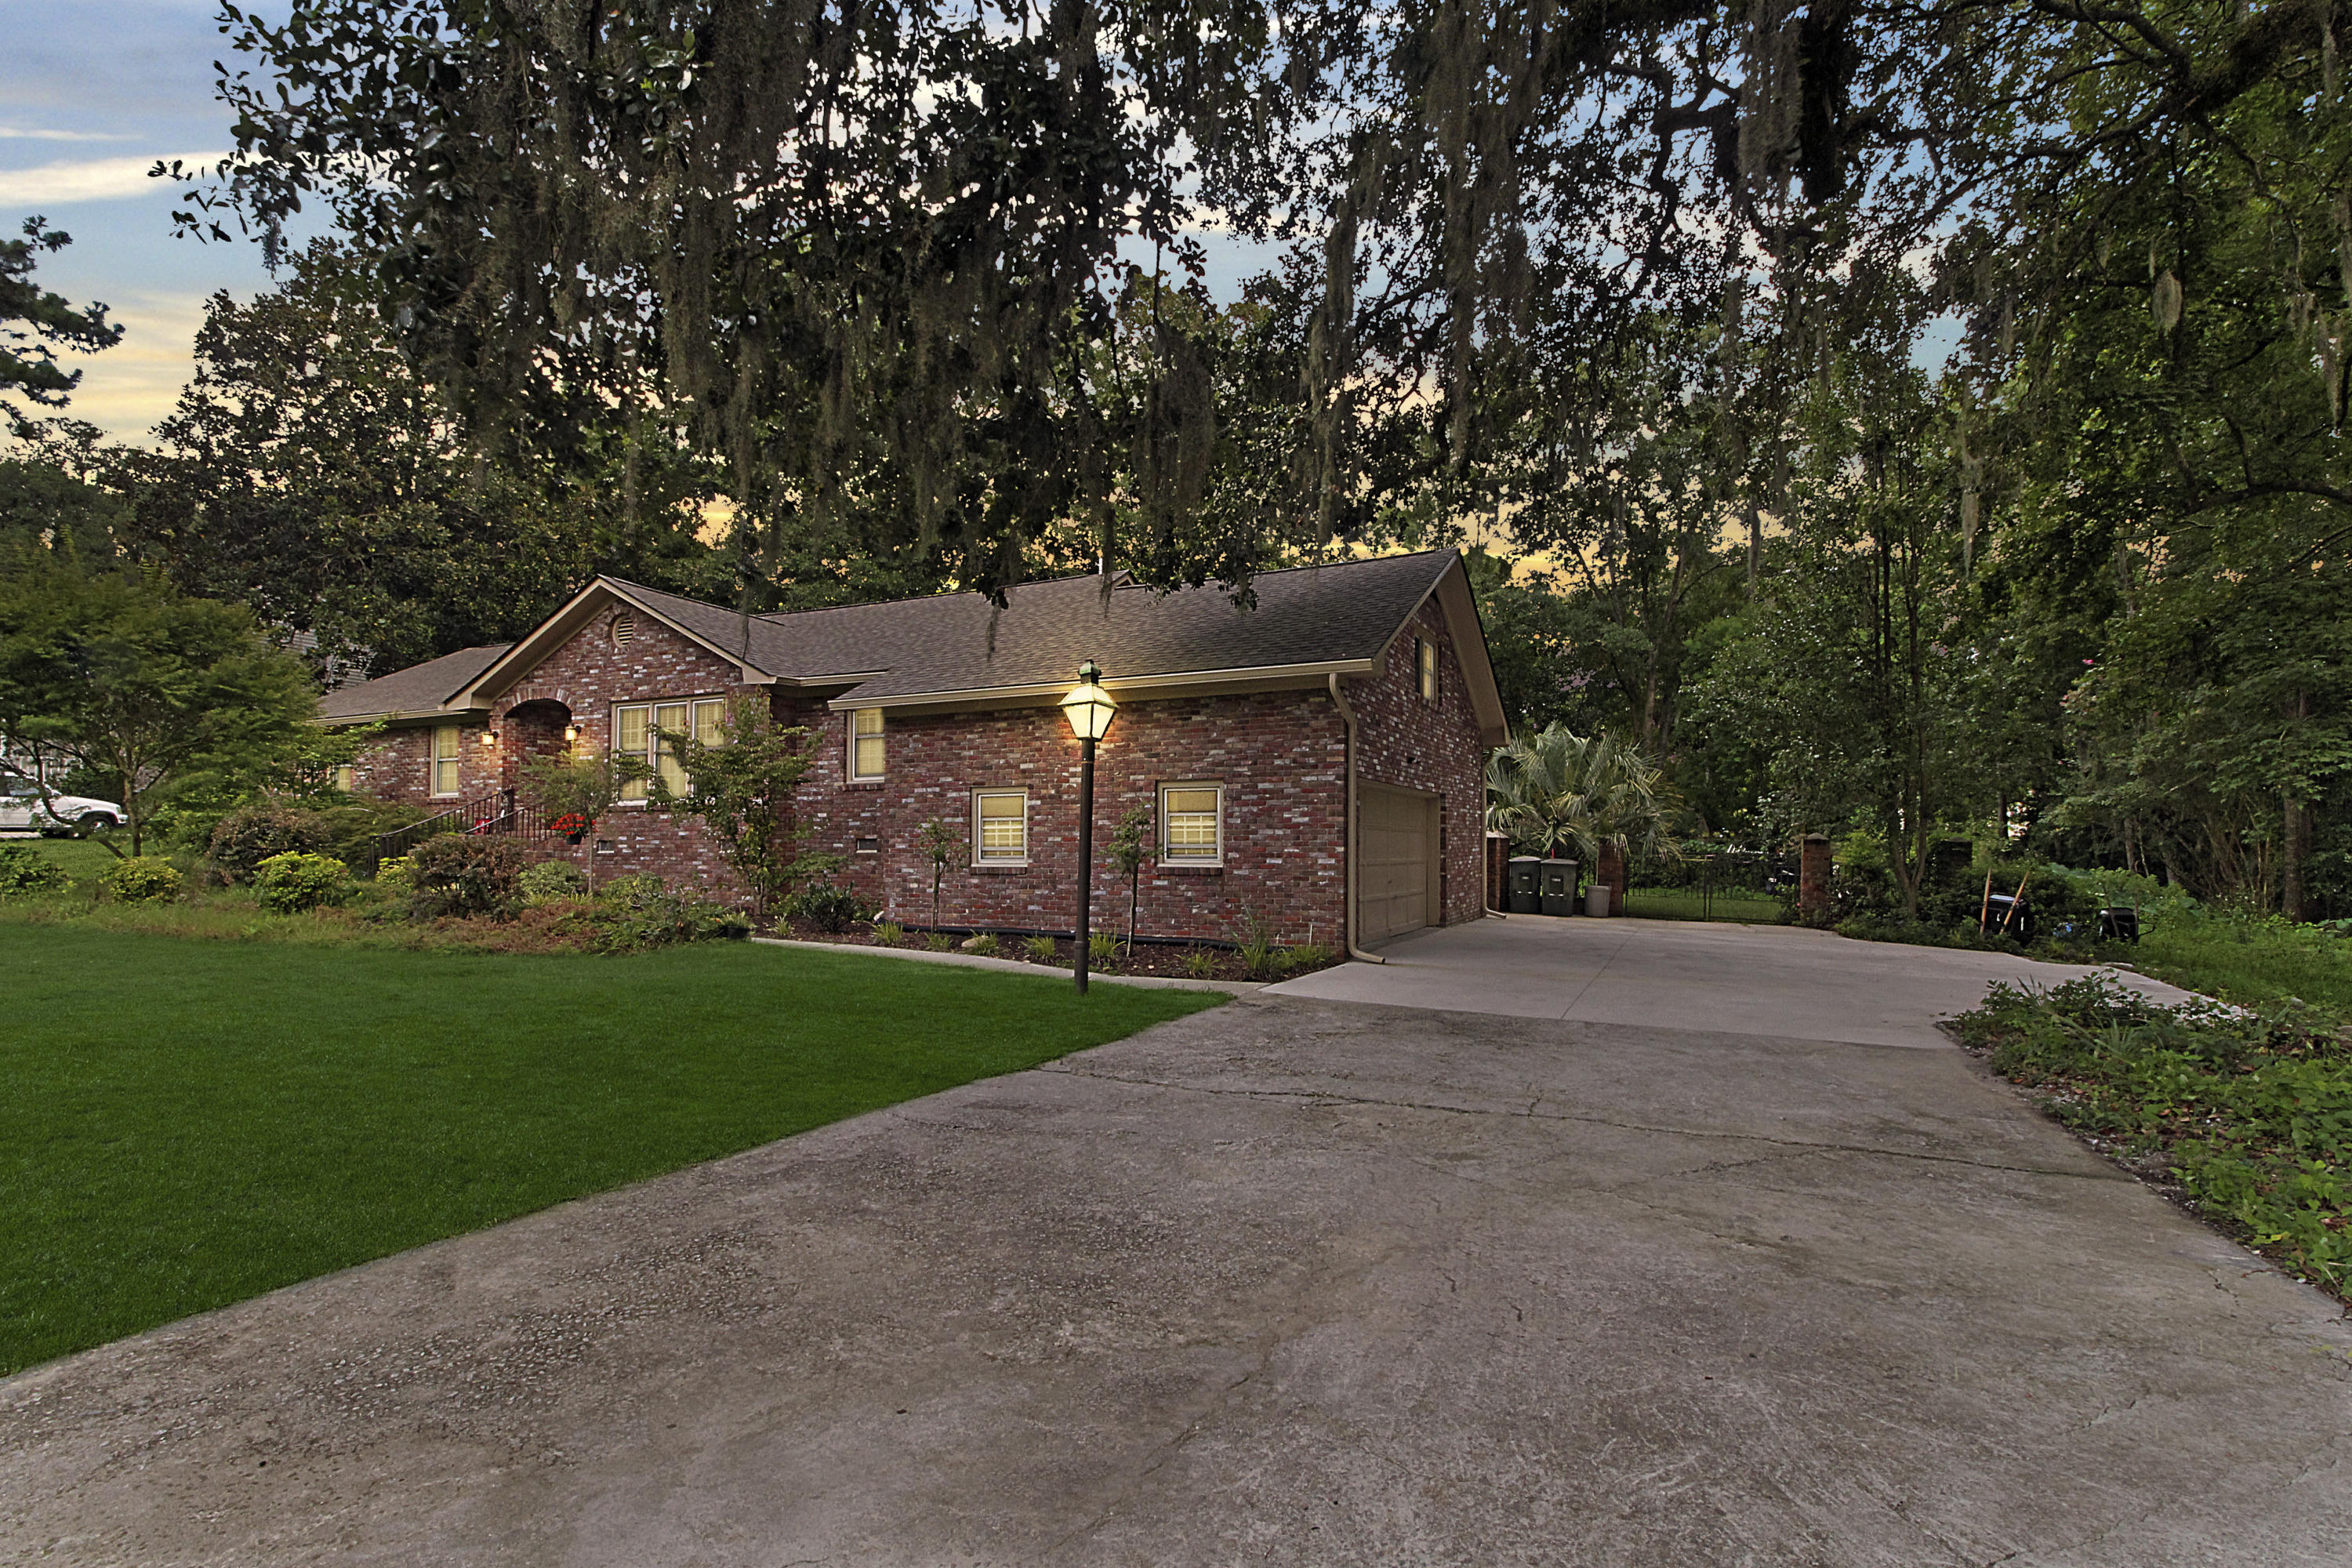 Dominion Hills Homes For Sale - 1027 Yeamans Hall, Hanahan, SC - 24